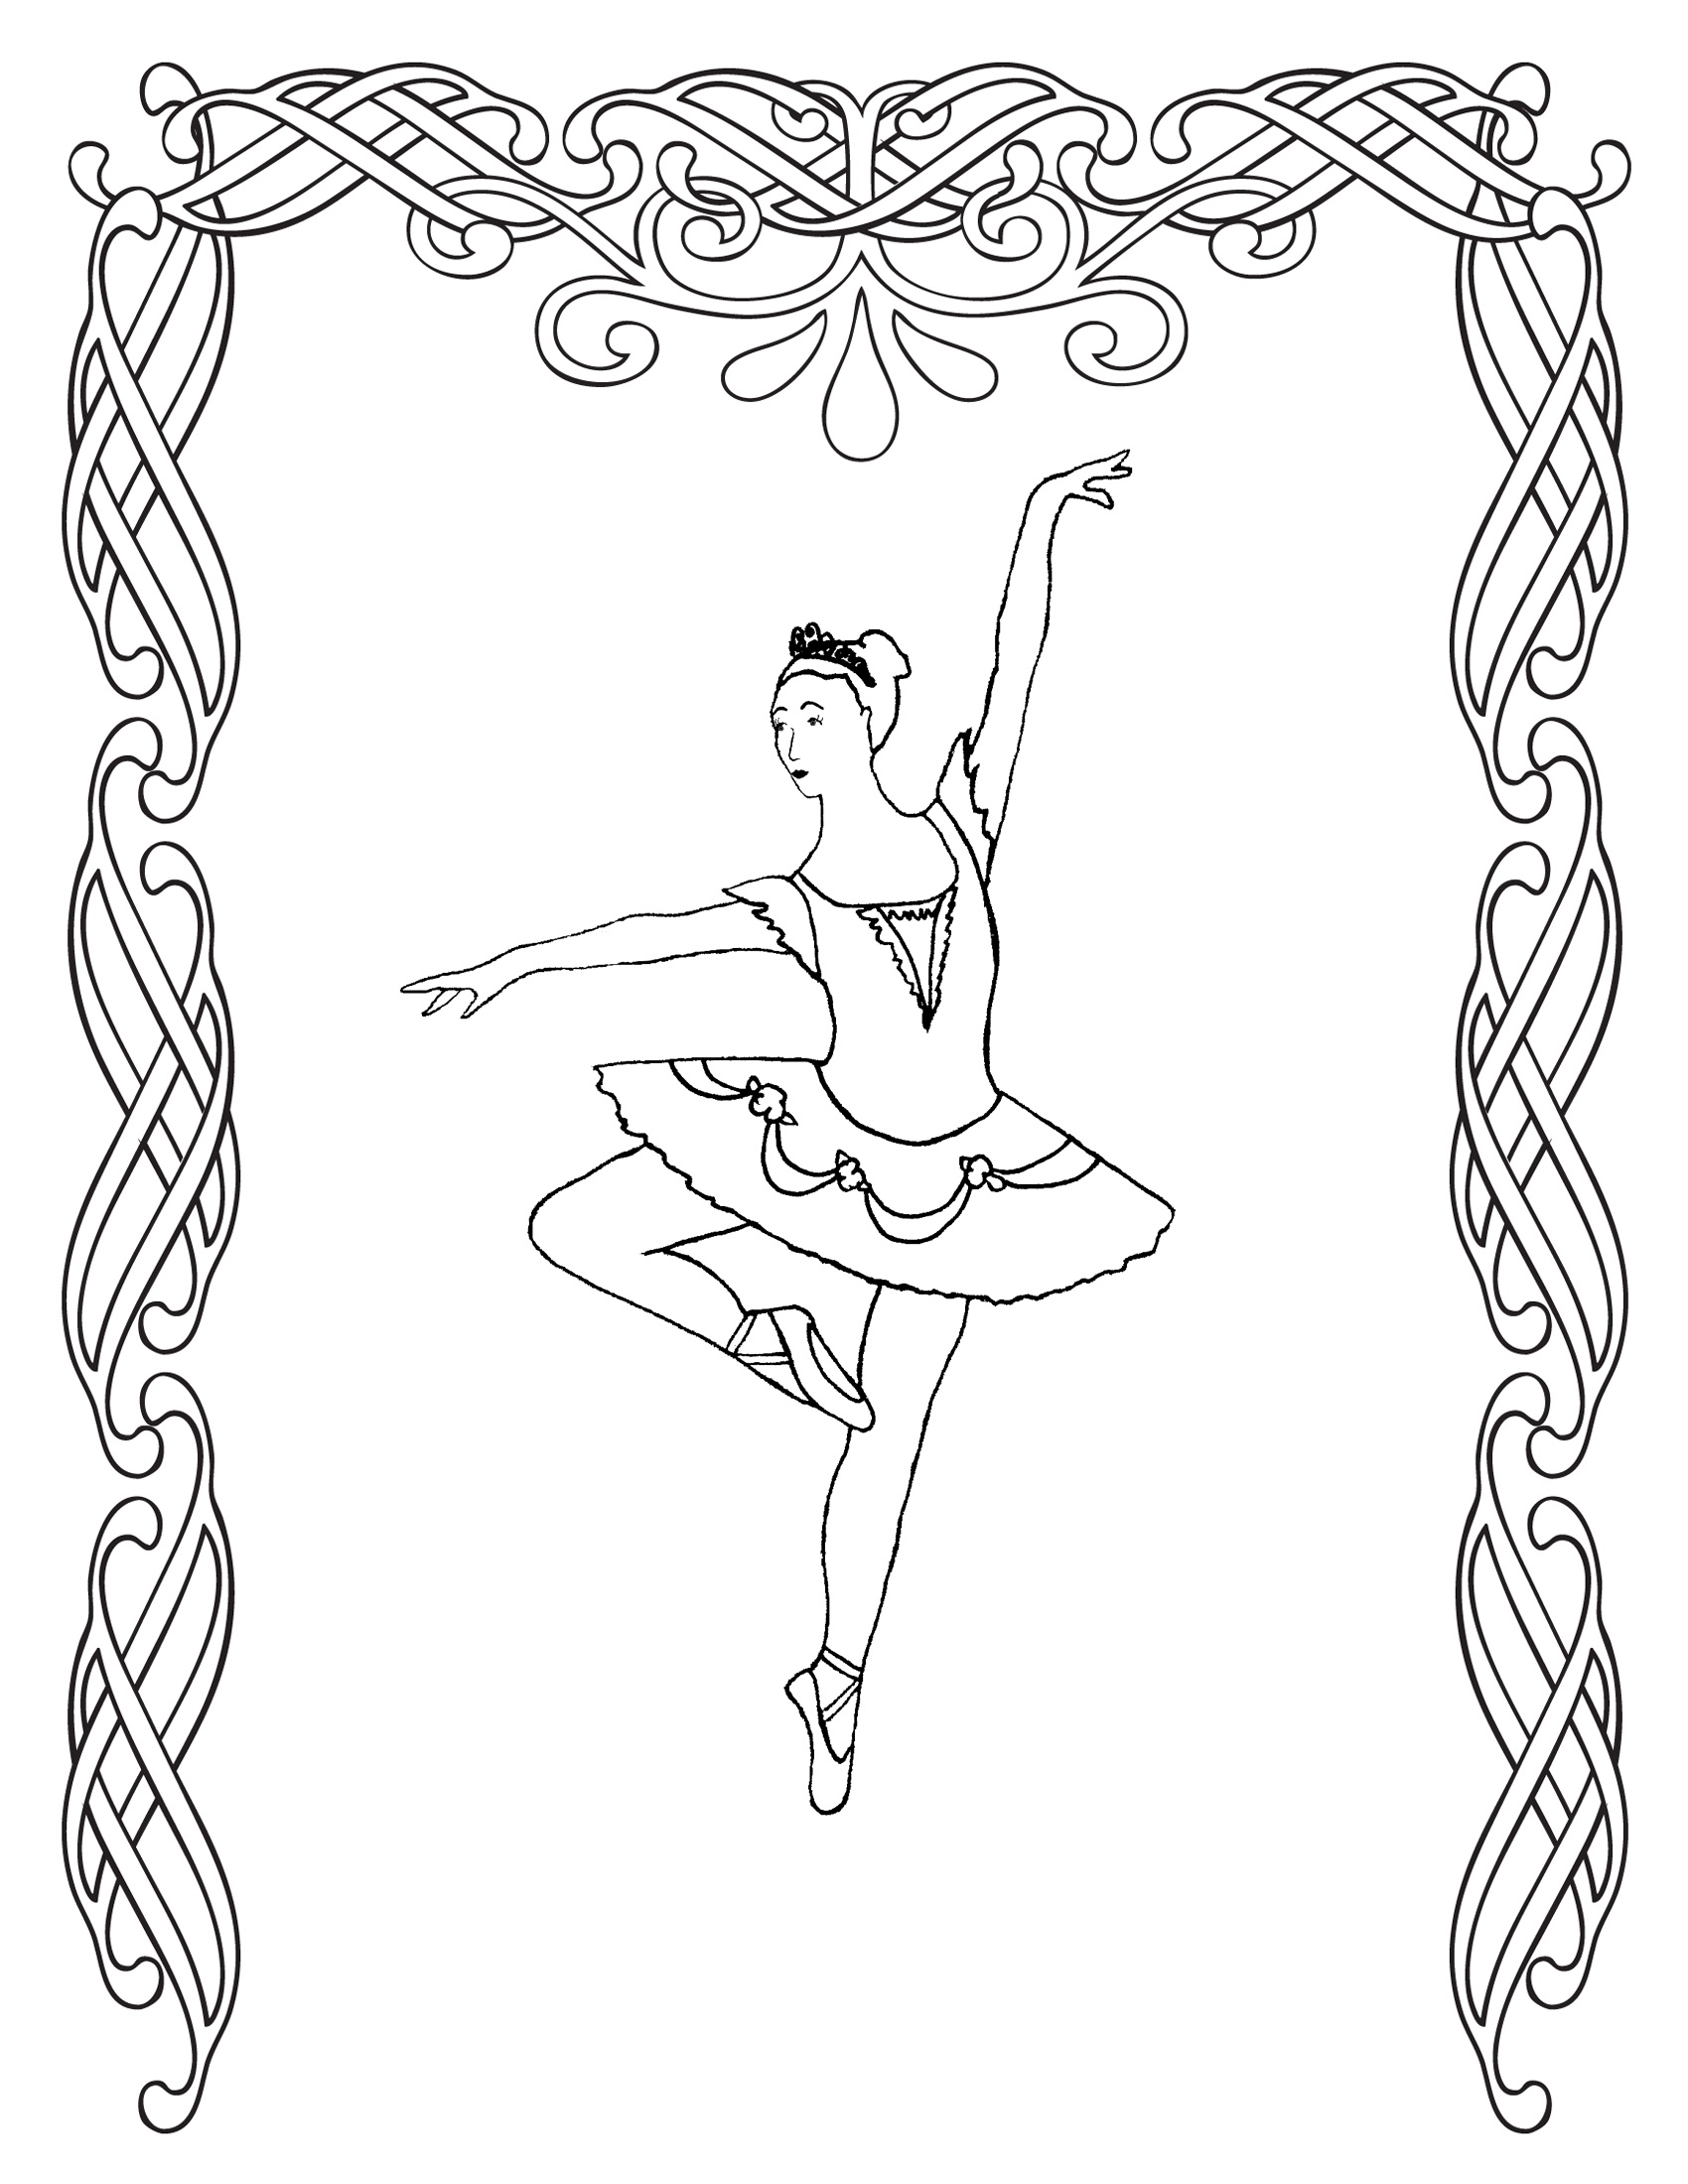 free printable coloring pages dancers - photo#45